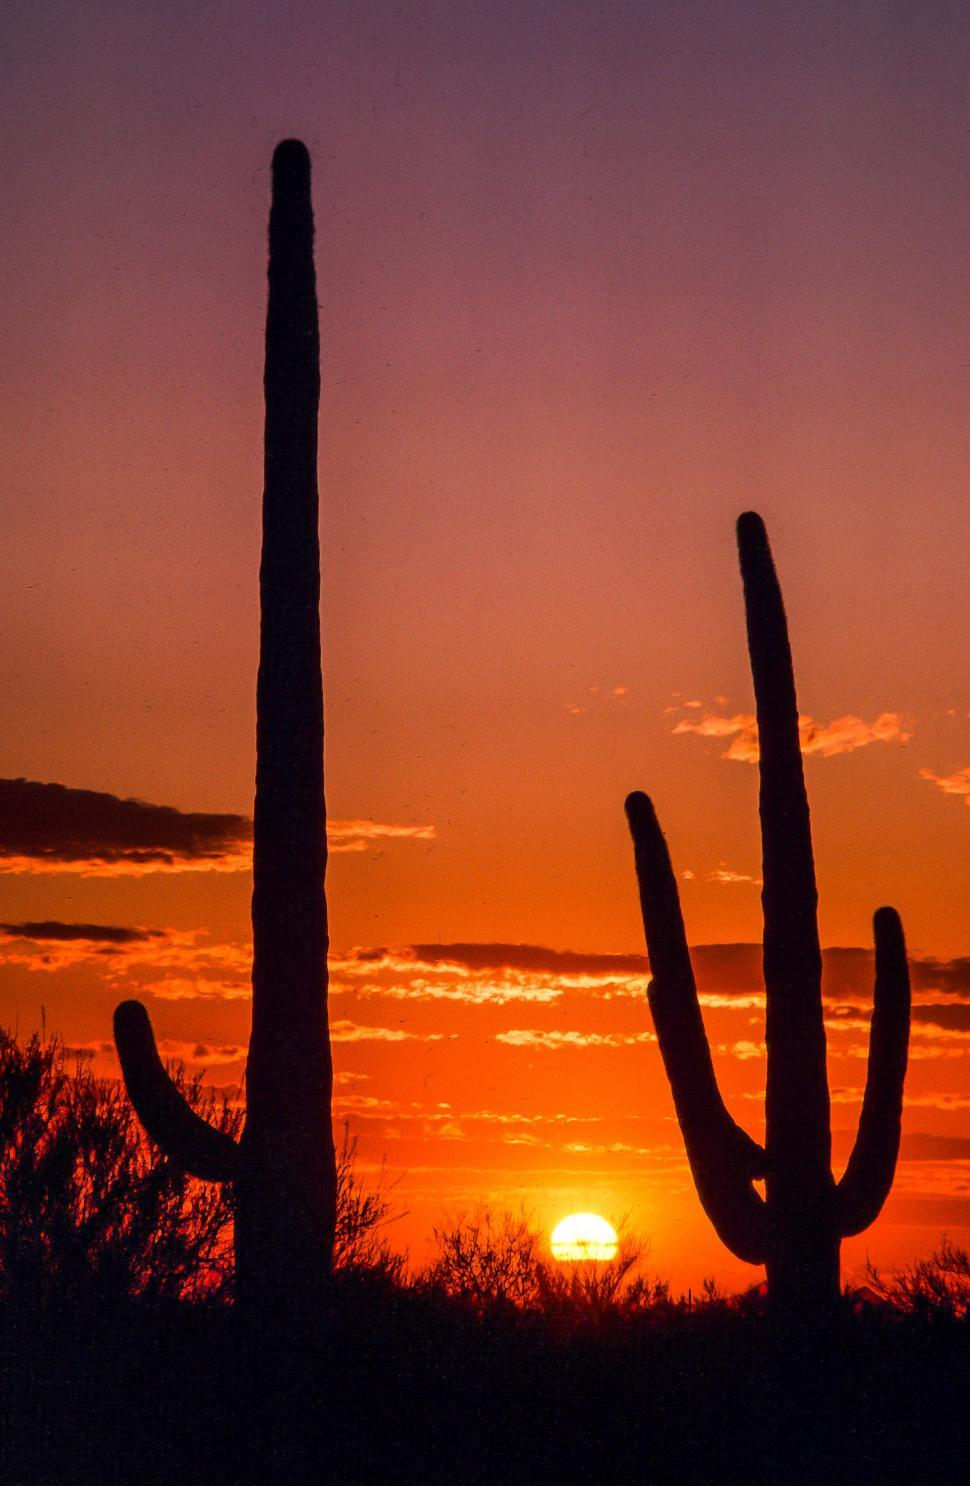 Download Free Stock HD Photo of Saguaro Cactus and sunset in Arizona Online